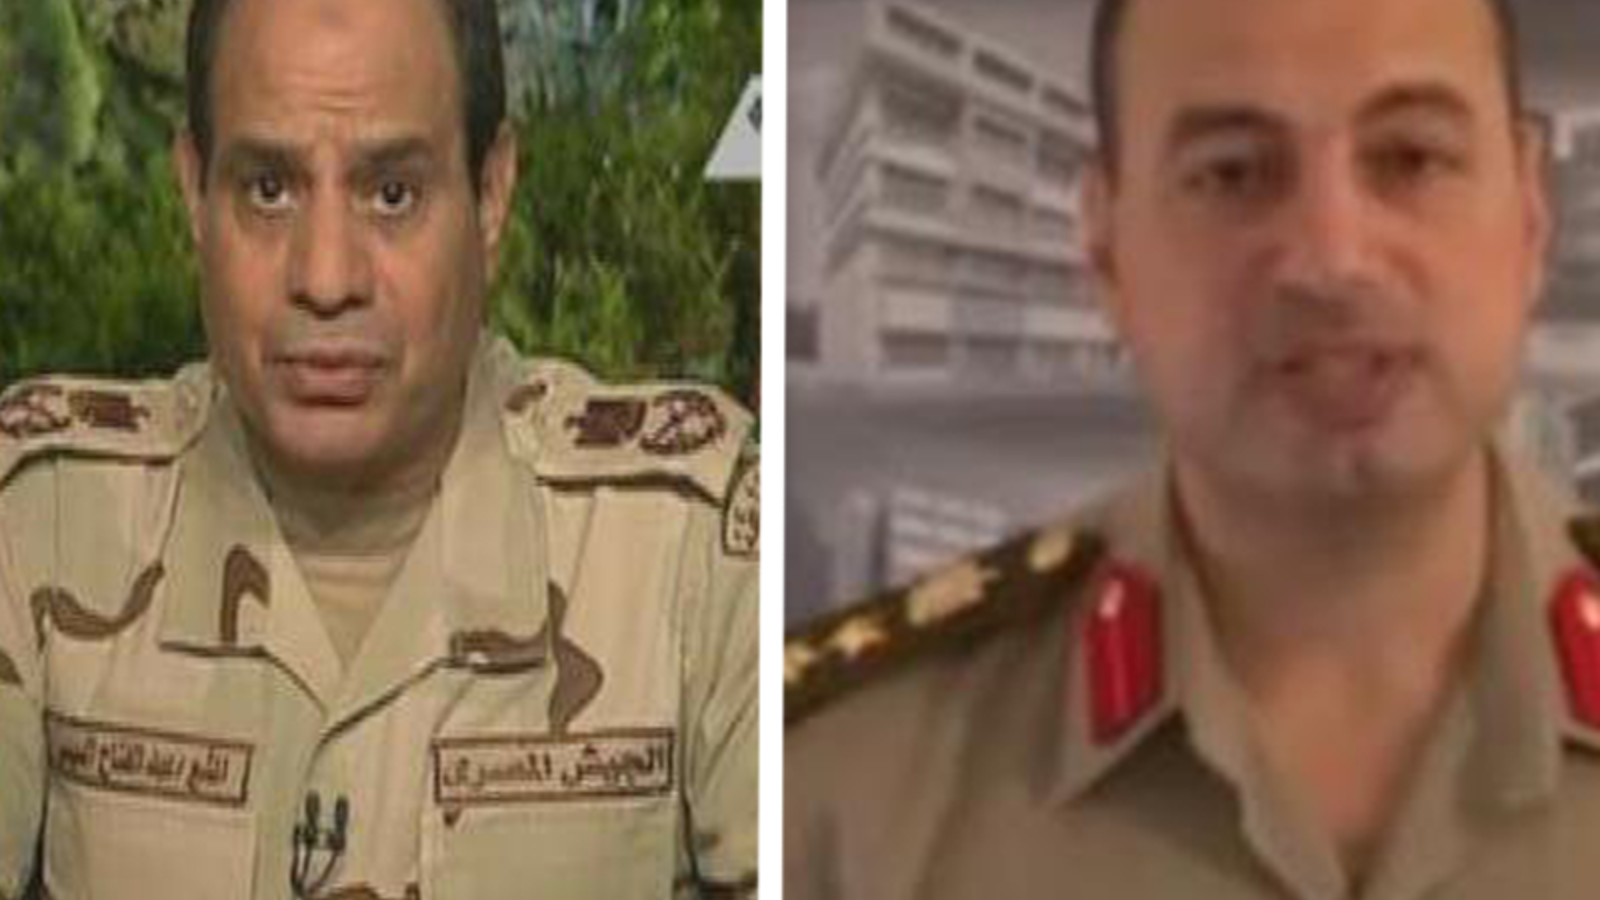 President Abdel Fattah el-Sisi is a former general who, after overthrowing democratically elected Mohammed Morsi in 2013, wore military uniform to announce his candidacy in 2014 (Twitter)